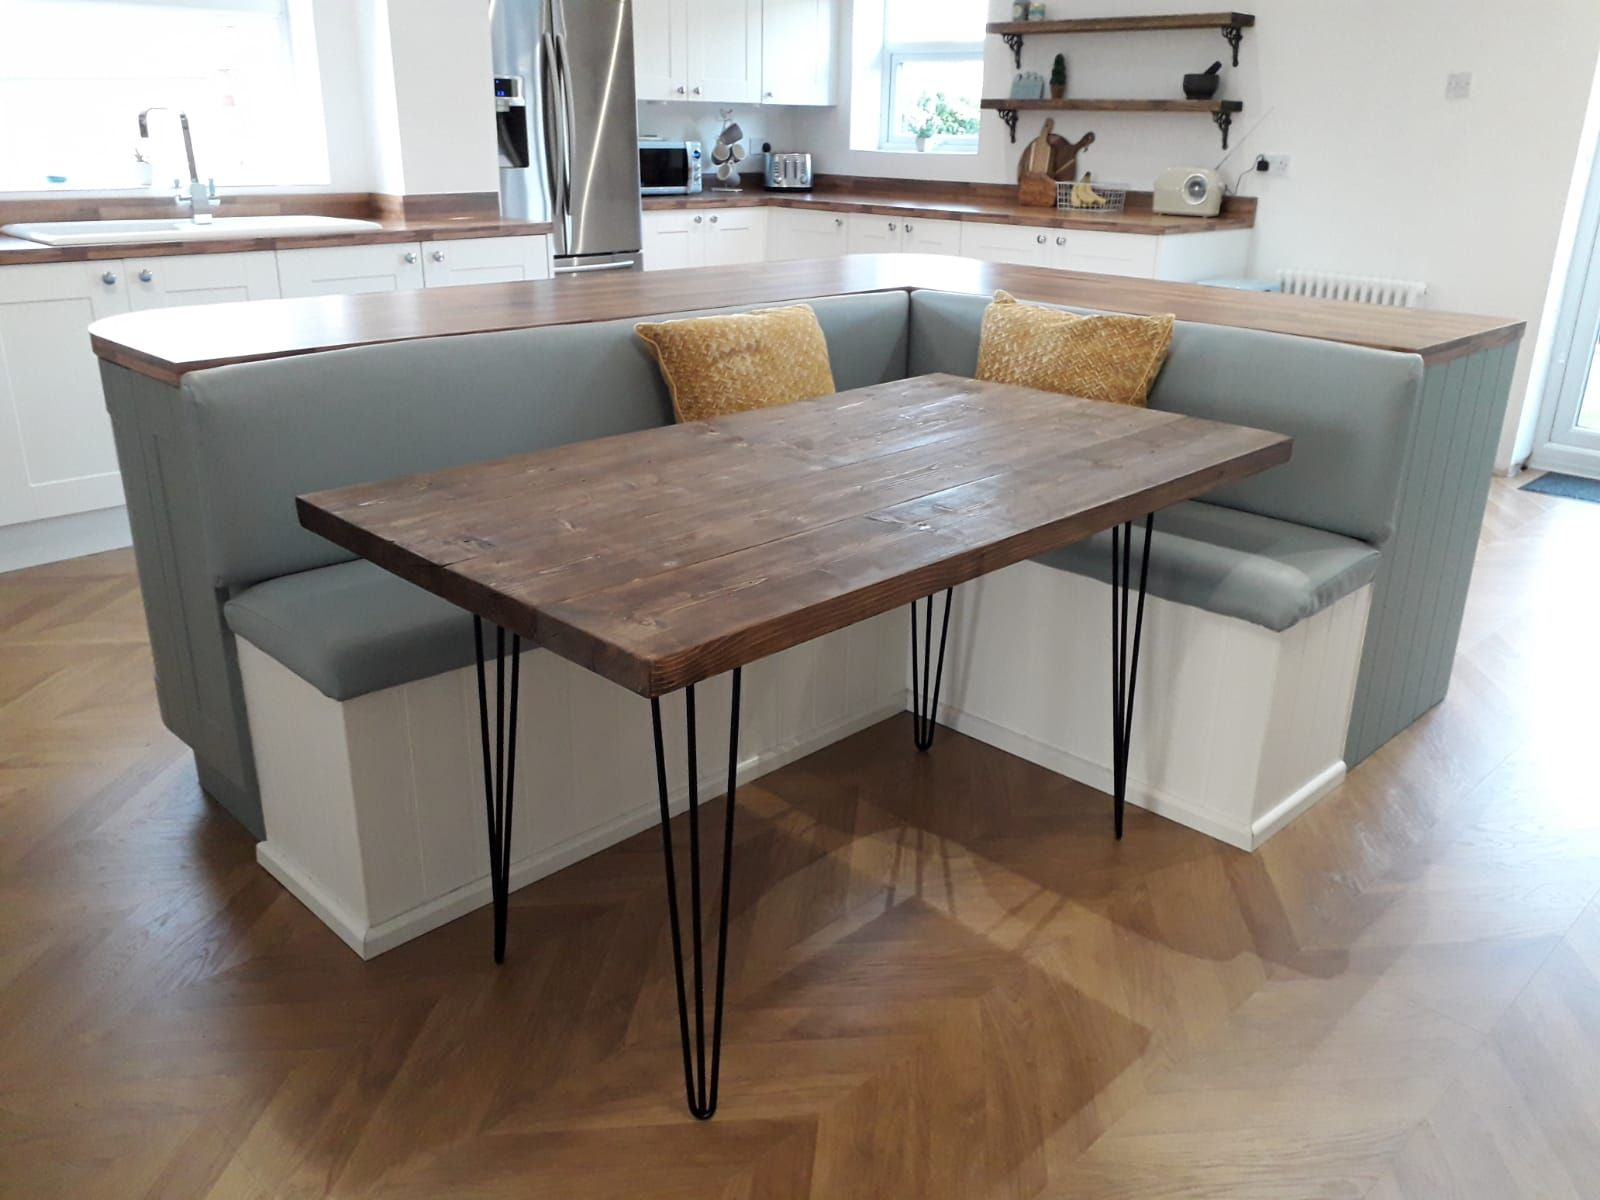 Our L Shaped Kitchen Dining Booth And Handmade Table With Hairpin